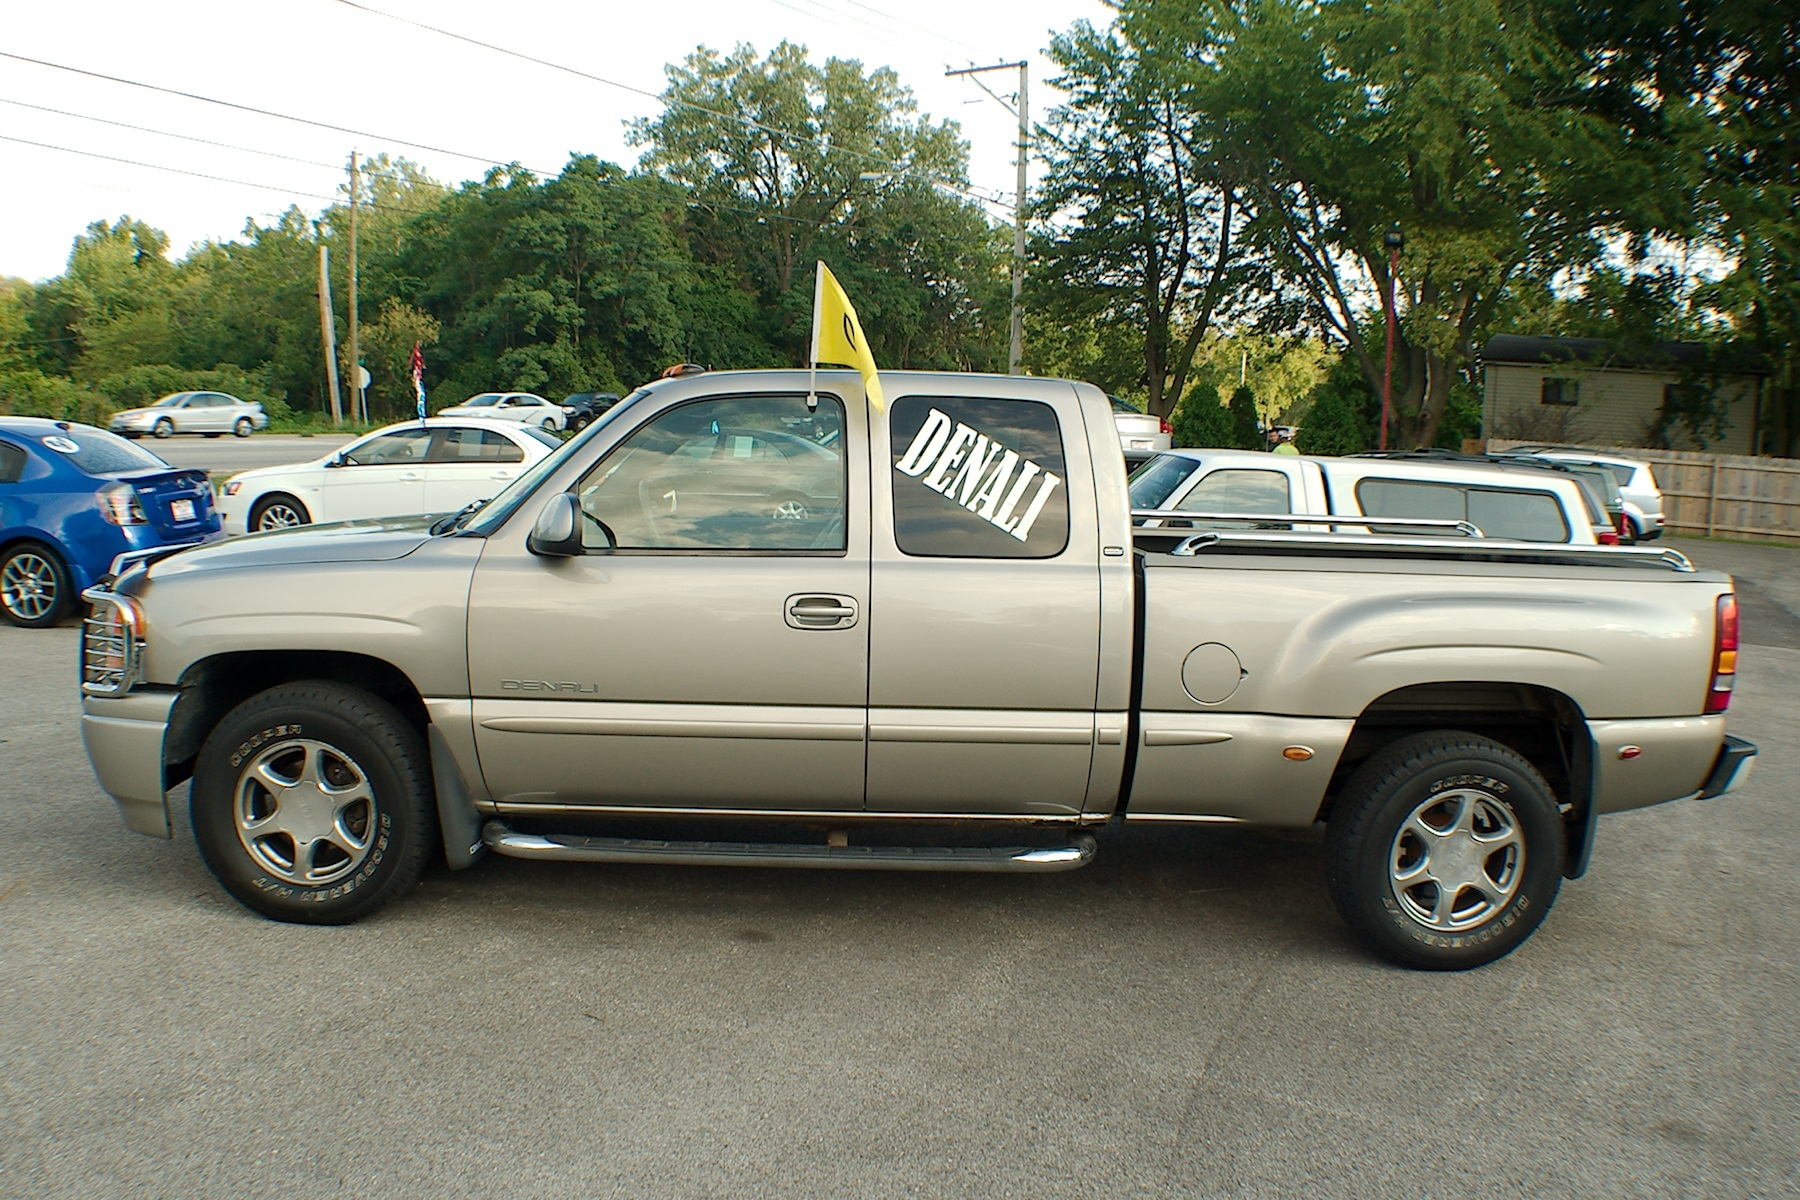 2002 GMC Sierra Pewter Used 4x4 Quad Steer Used Truck Sale Antioch Zion Waukegan Lake County Illinois